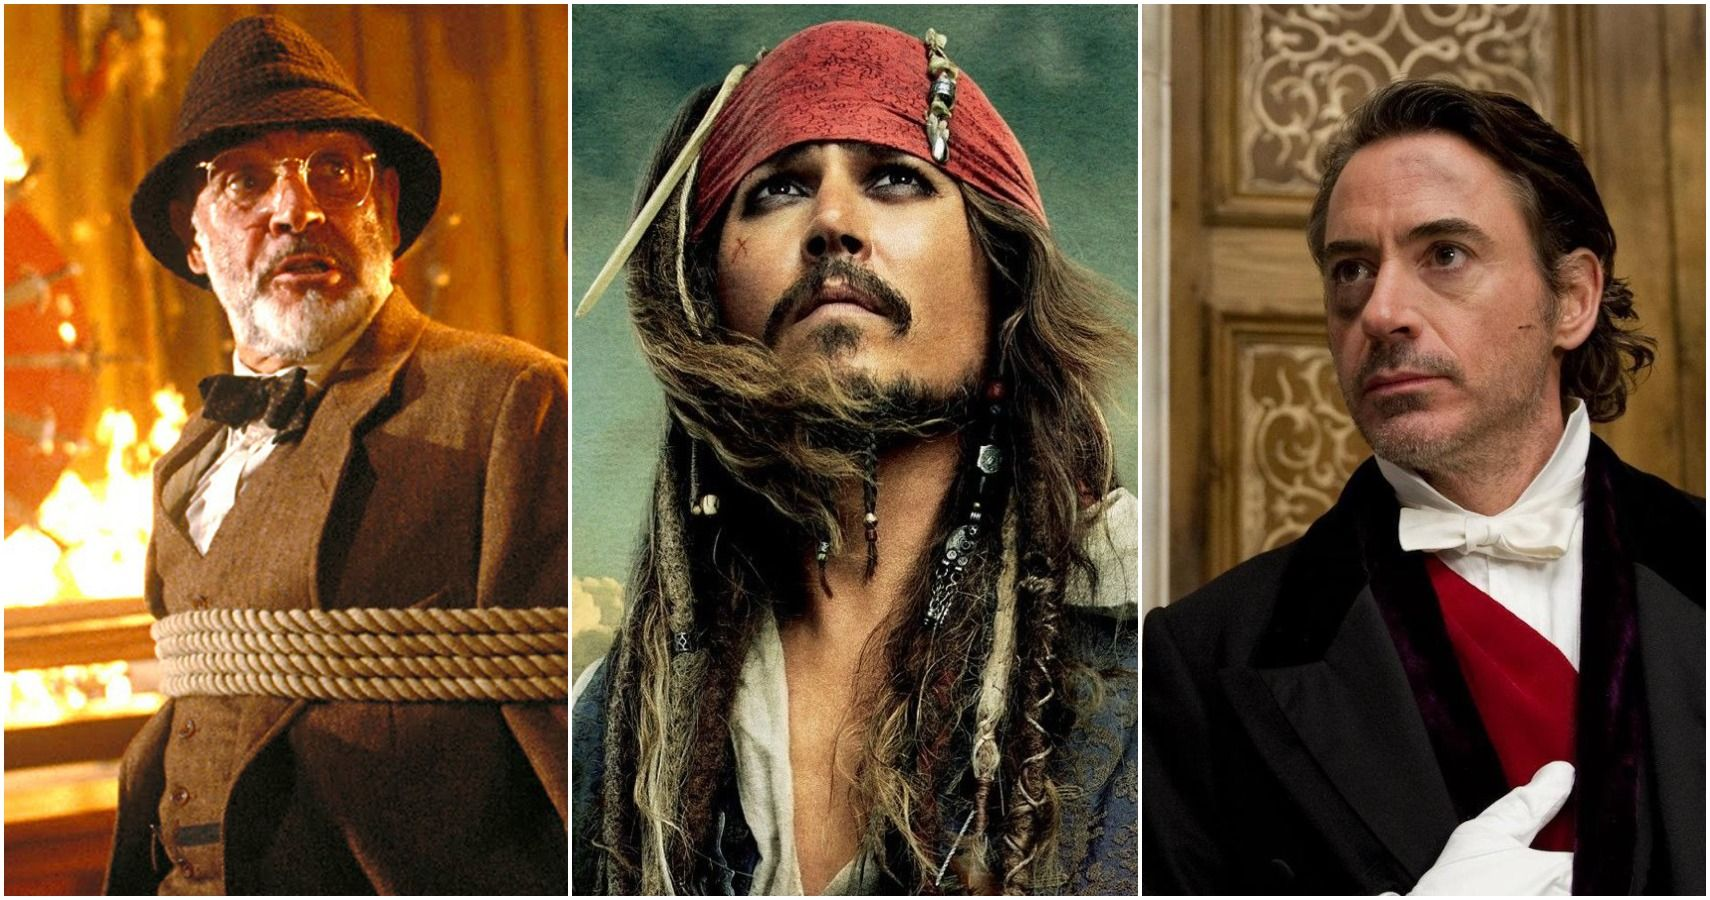 15 Movies To Watch If You Love Pirates Of The Caribbean